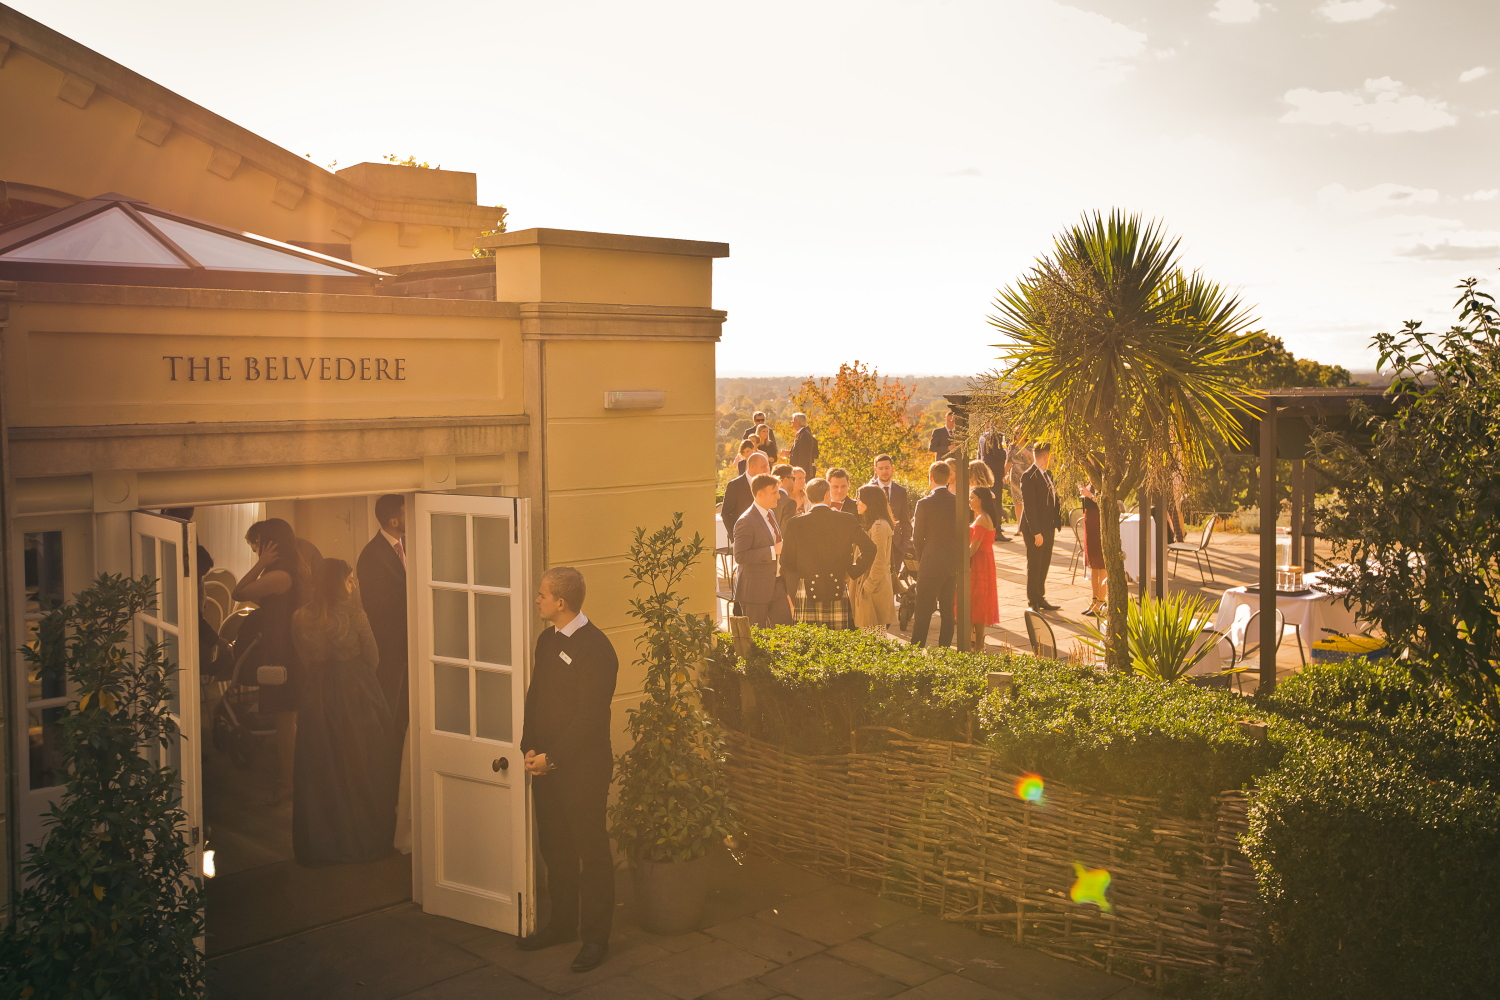 A warm, sunny scene outside the Belvedere Room, as guest mingle and drink on the terrace in the sunshine